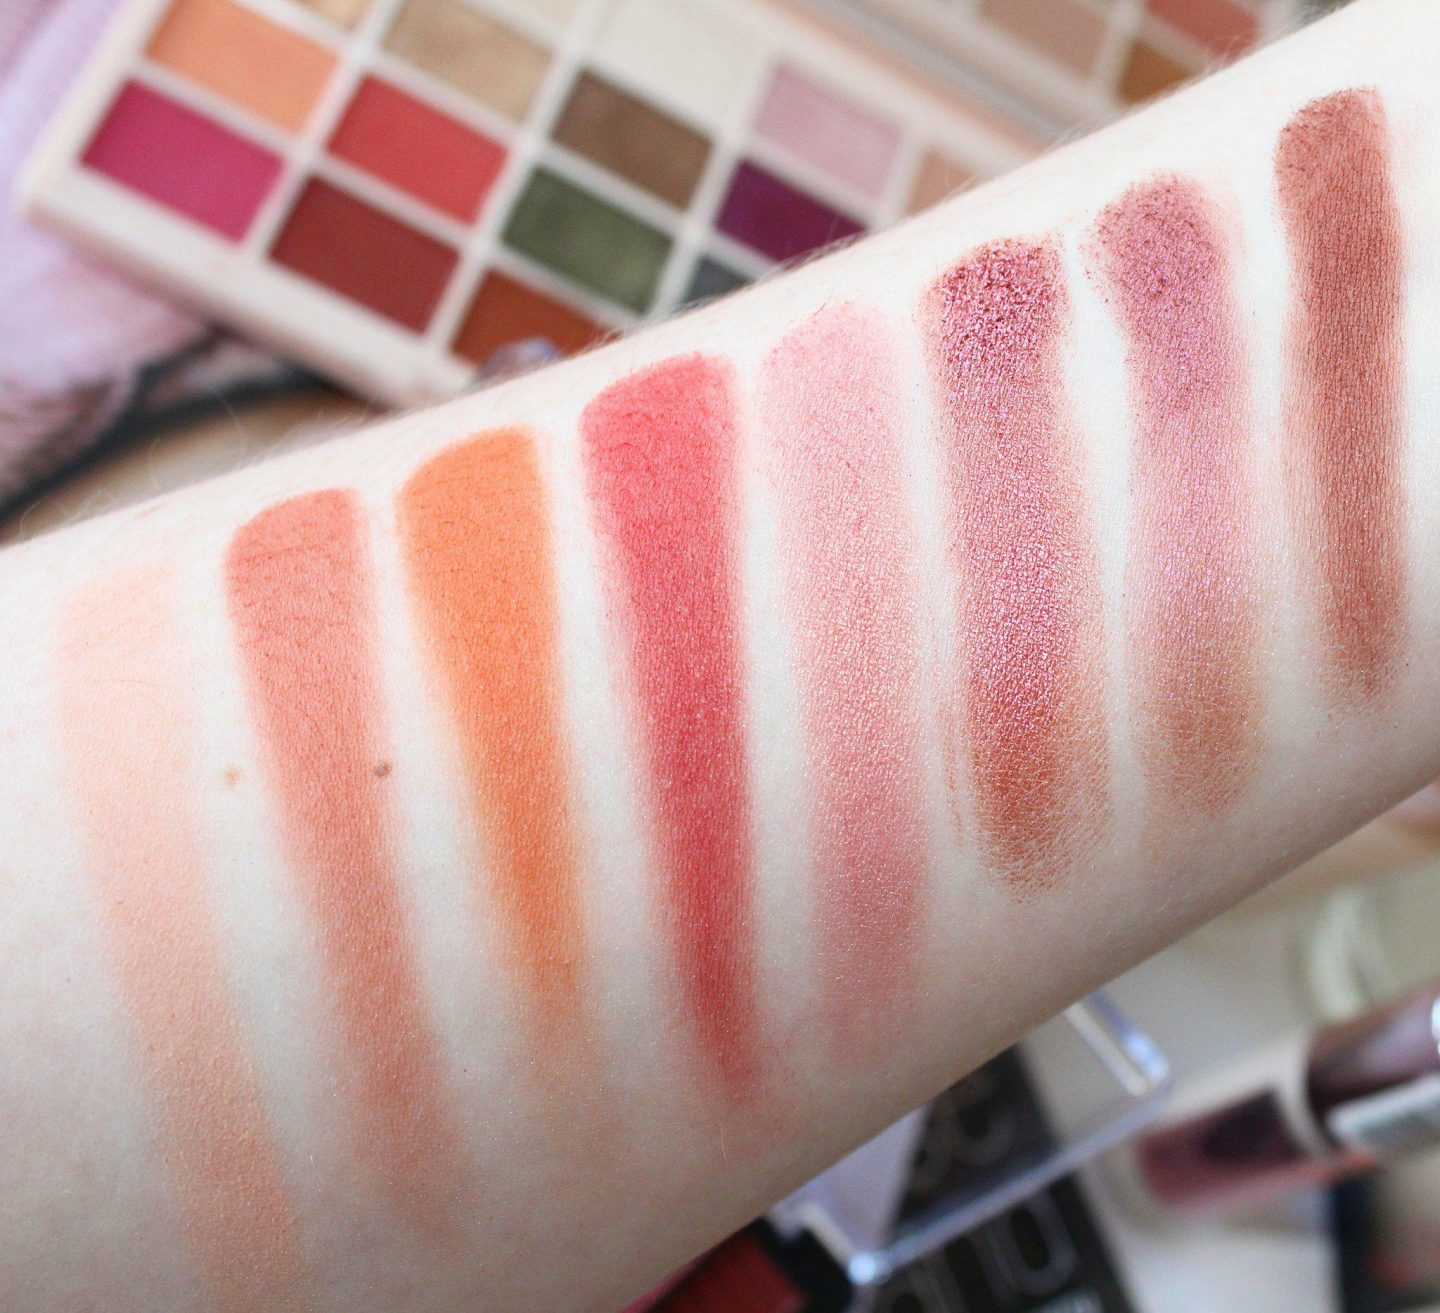 Revolution Pro Supreme Eyeshadow Palette in Intoxicate - Swatches